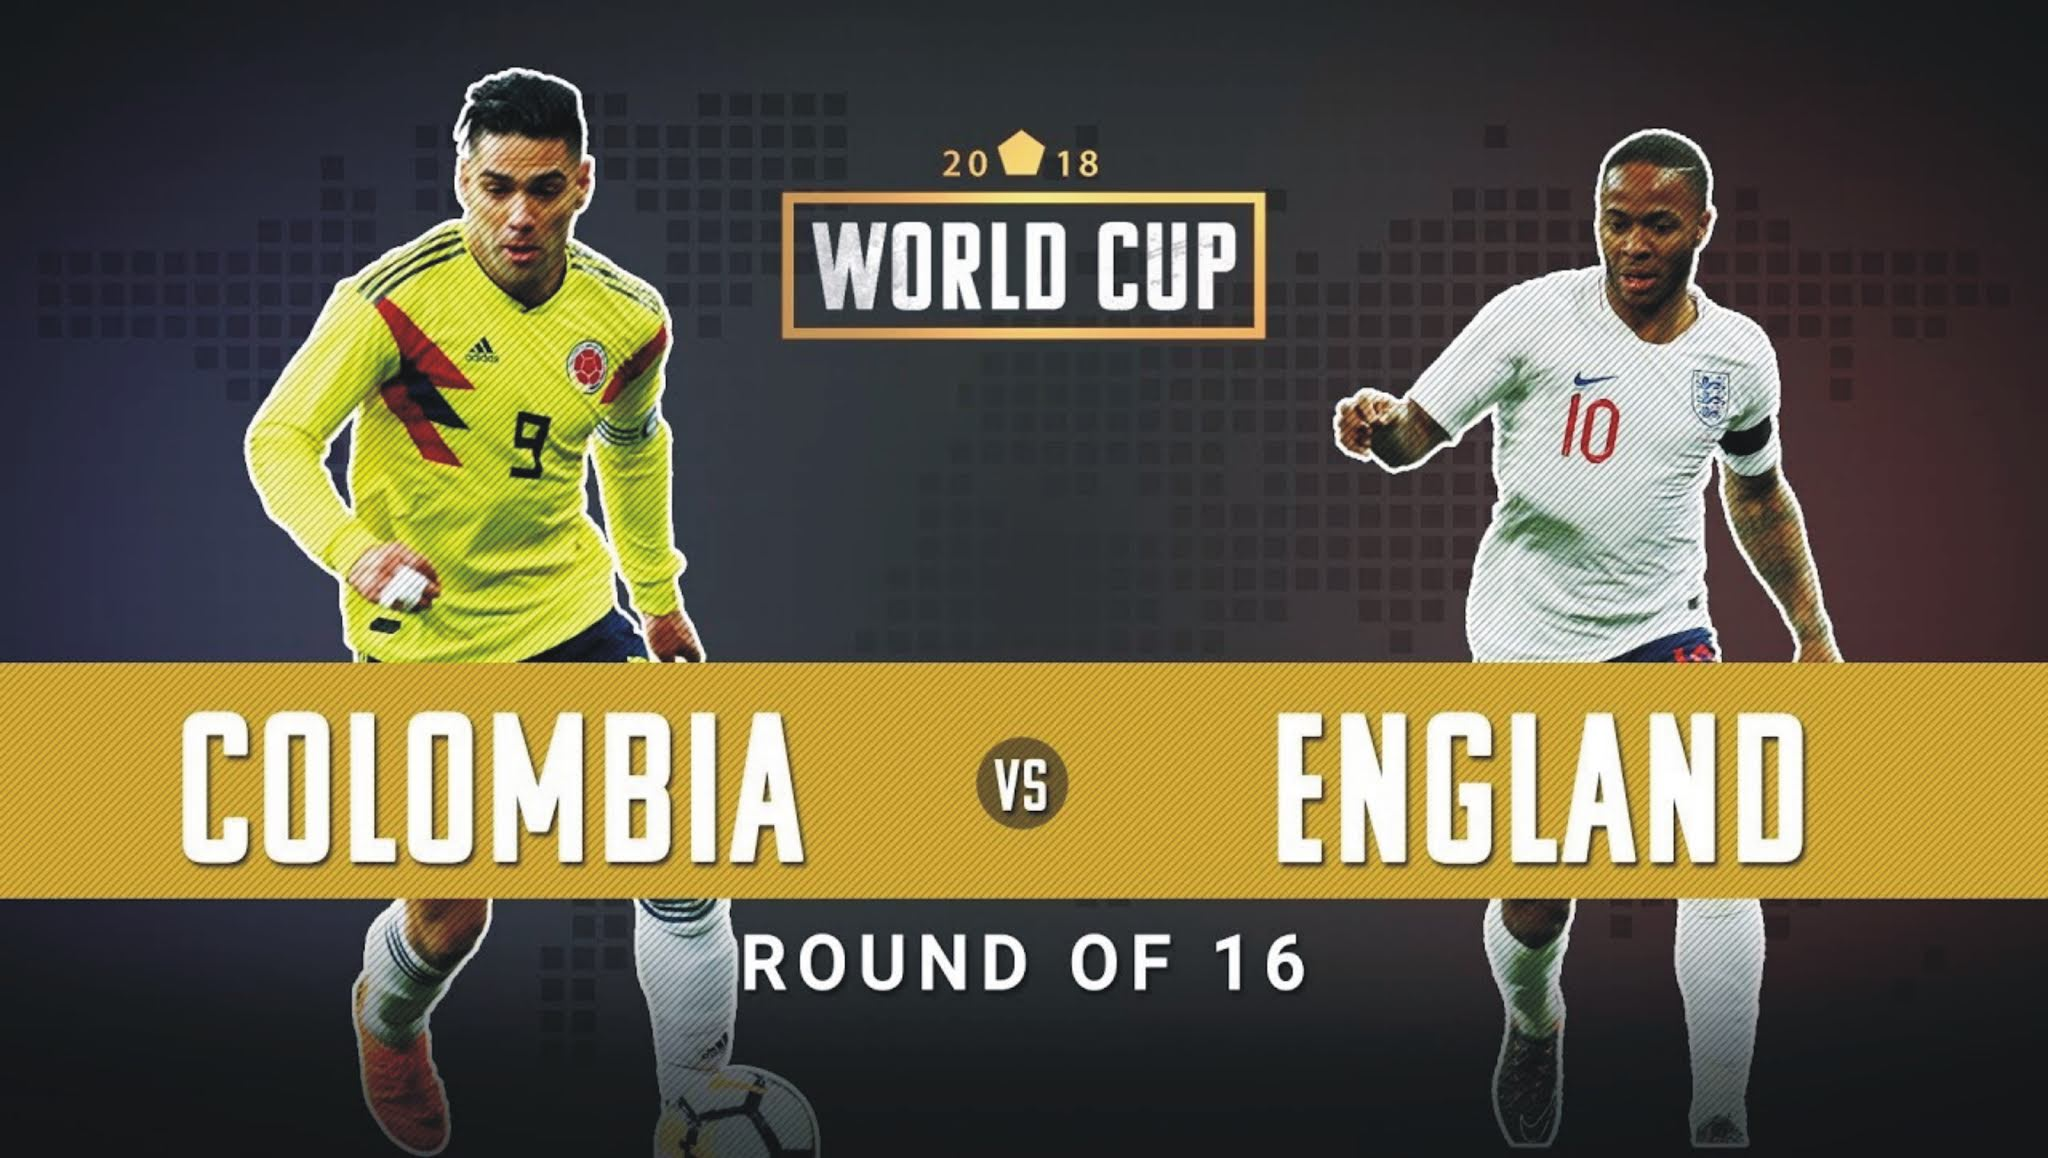 England vs Colombia World Cup 2018